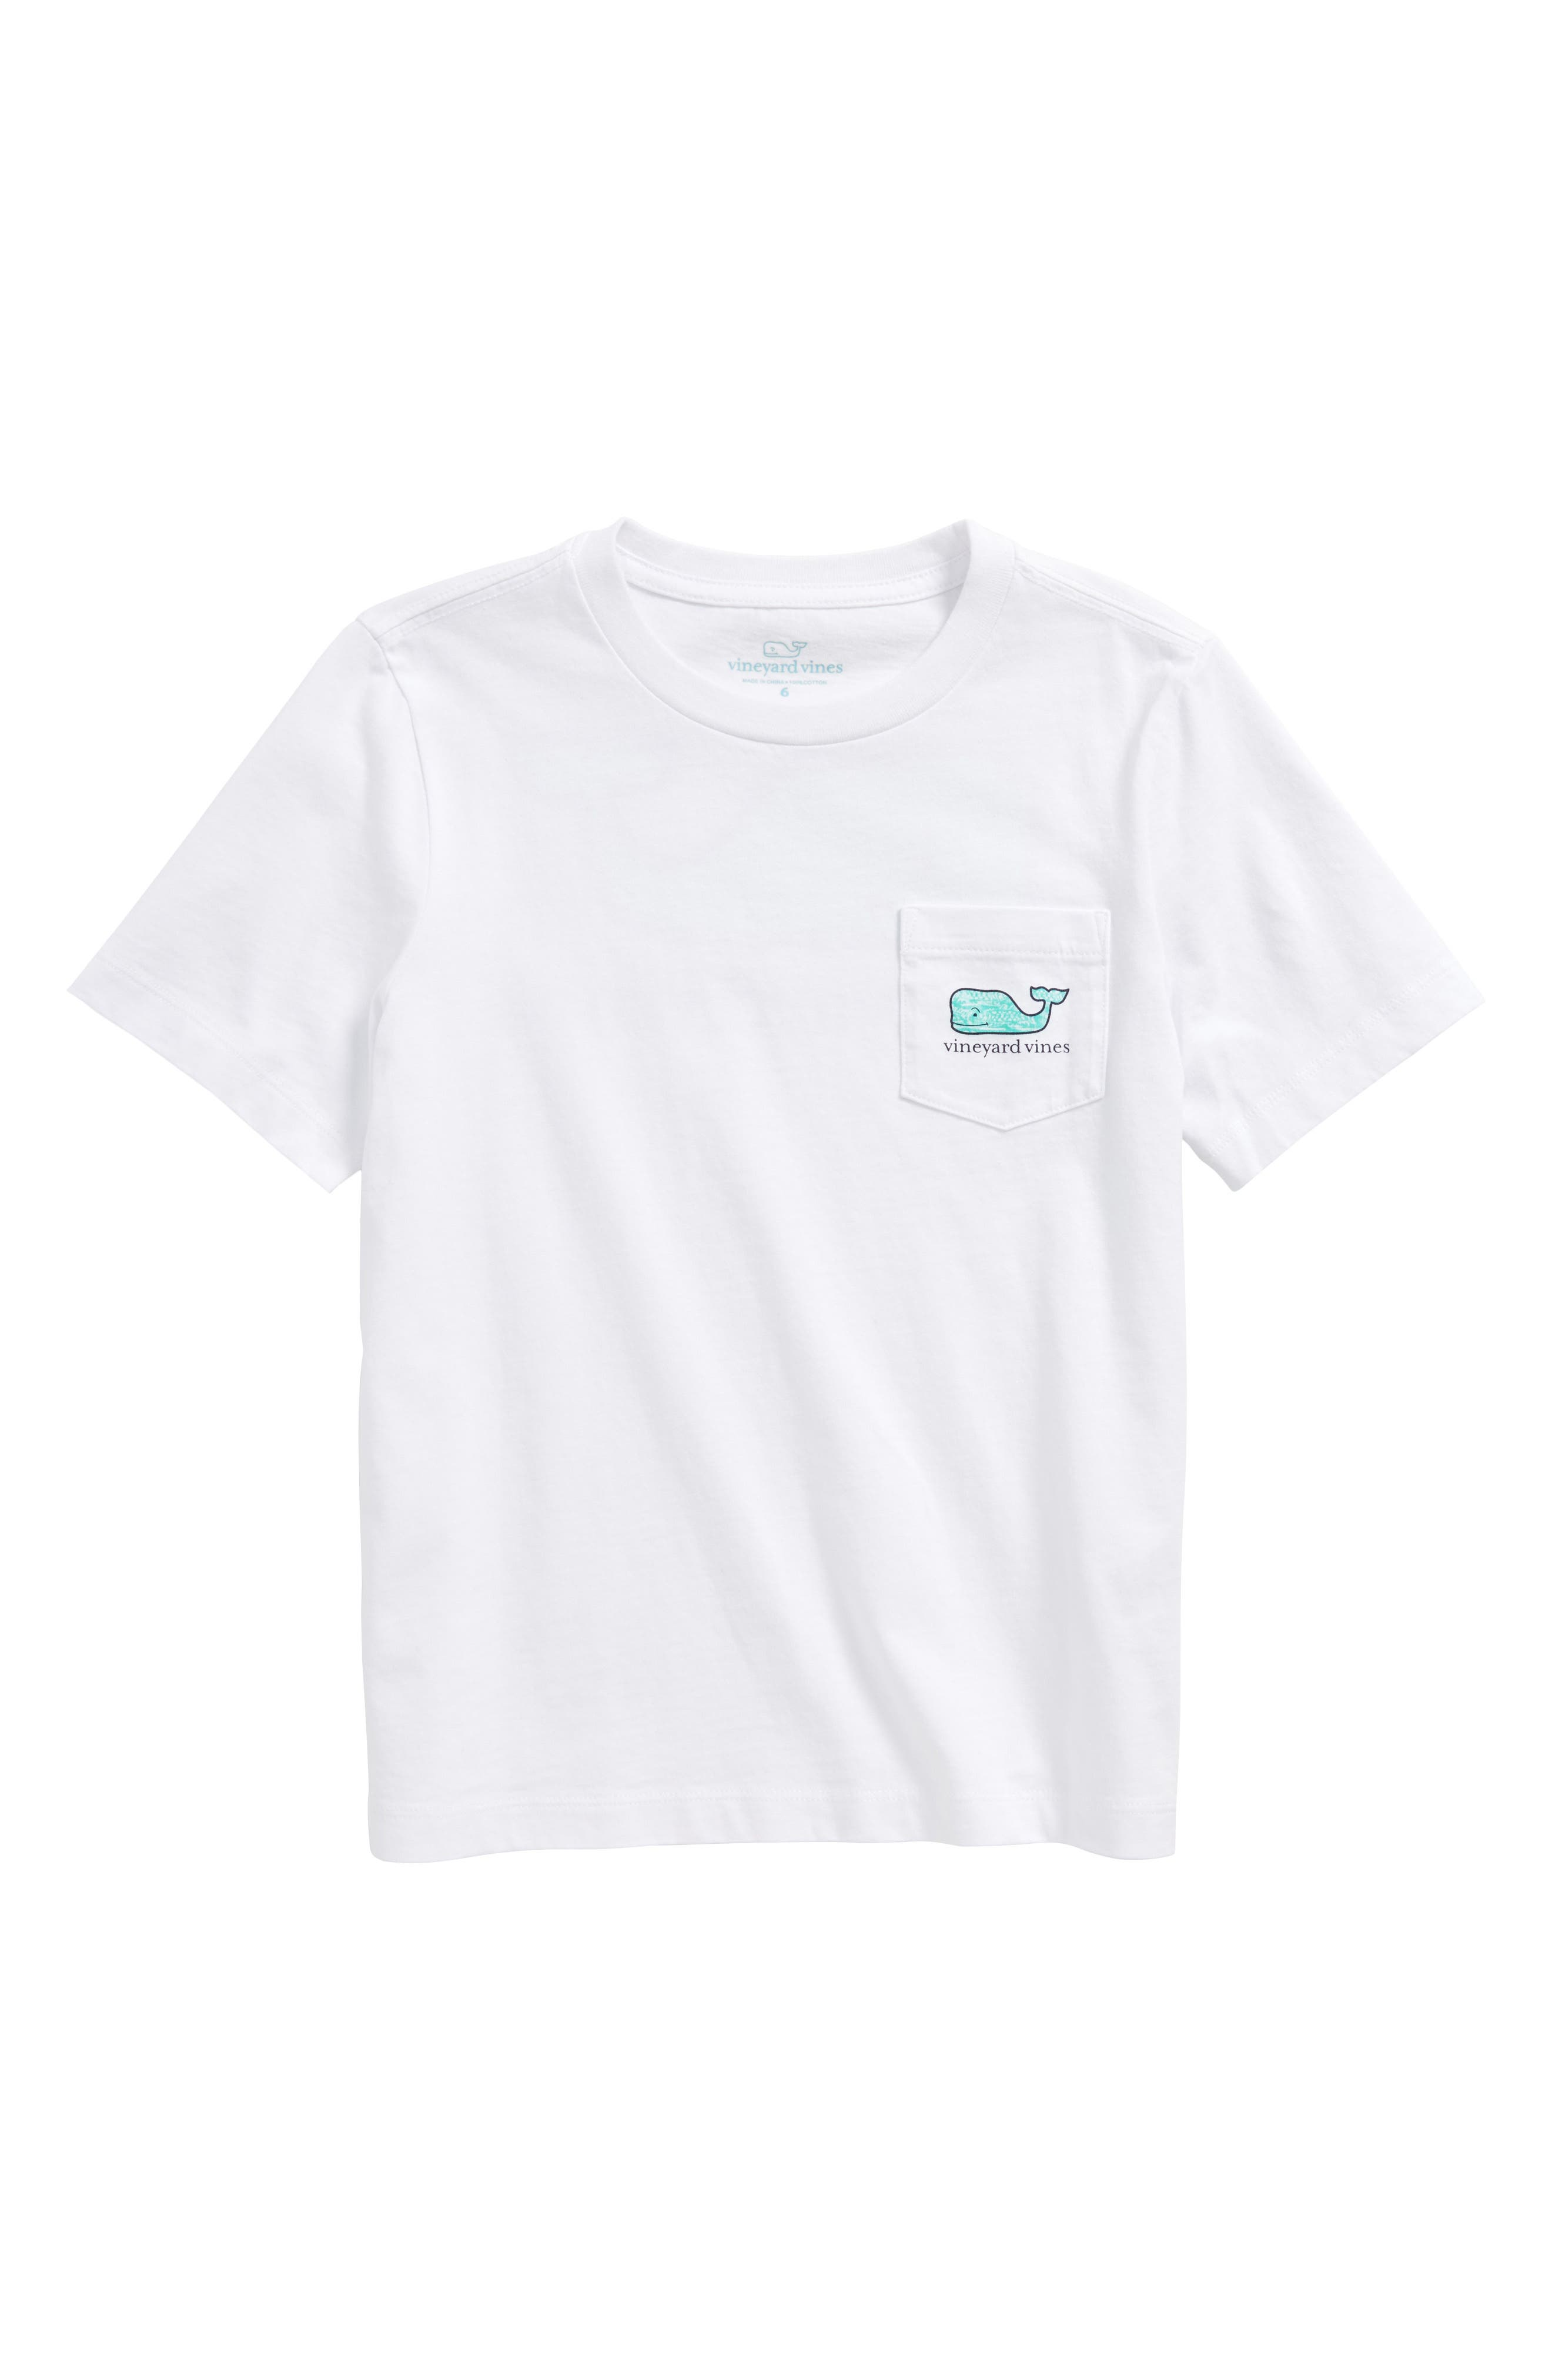 Fish Gate Whale T-Shirt,                         Main,                         color, White Cap